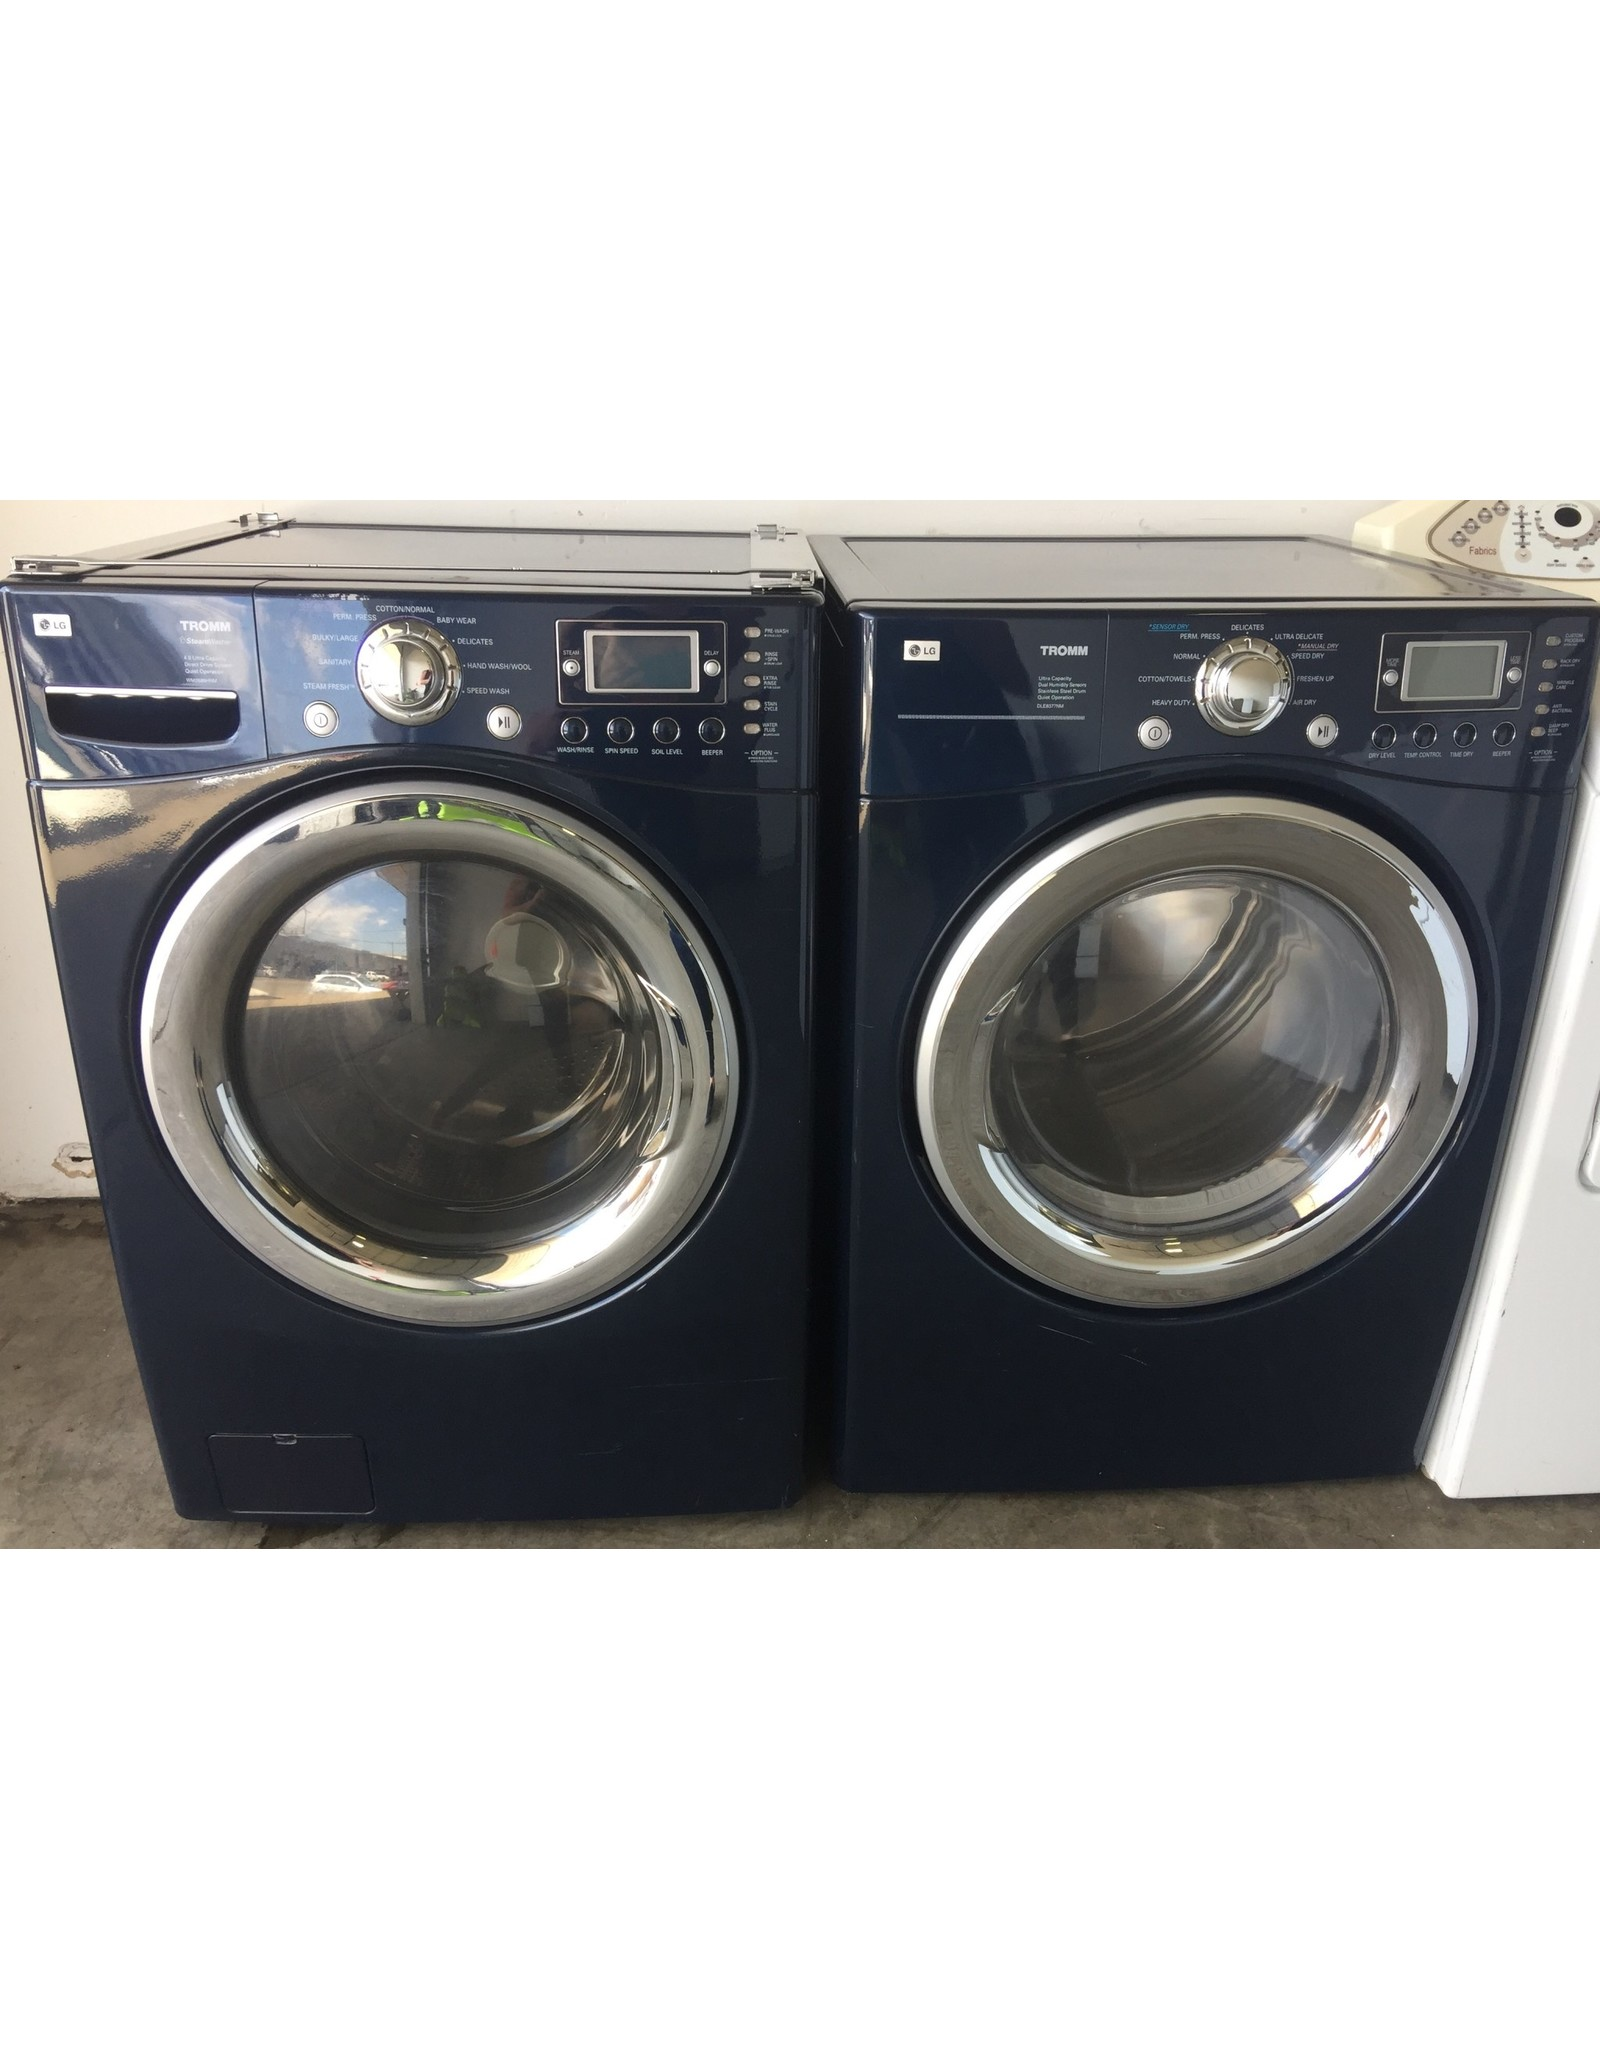 LG LG TROMM FRONT LOAD BLUE DRYER